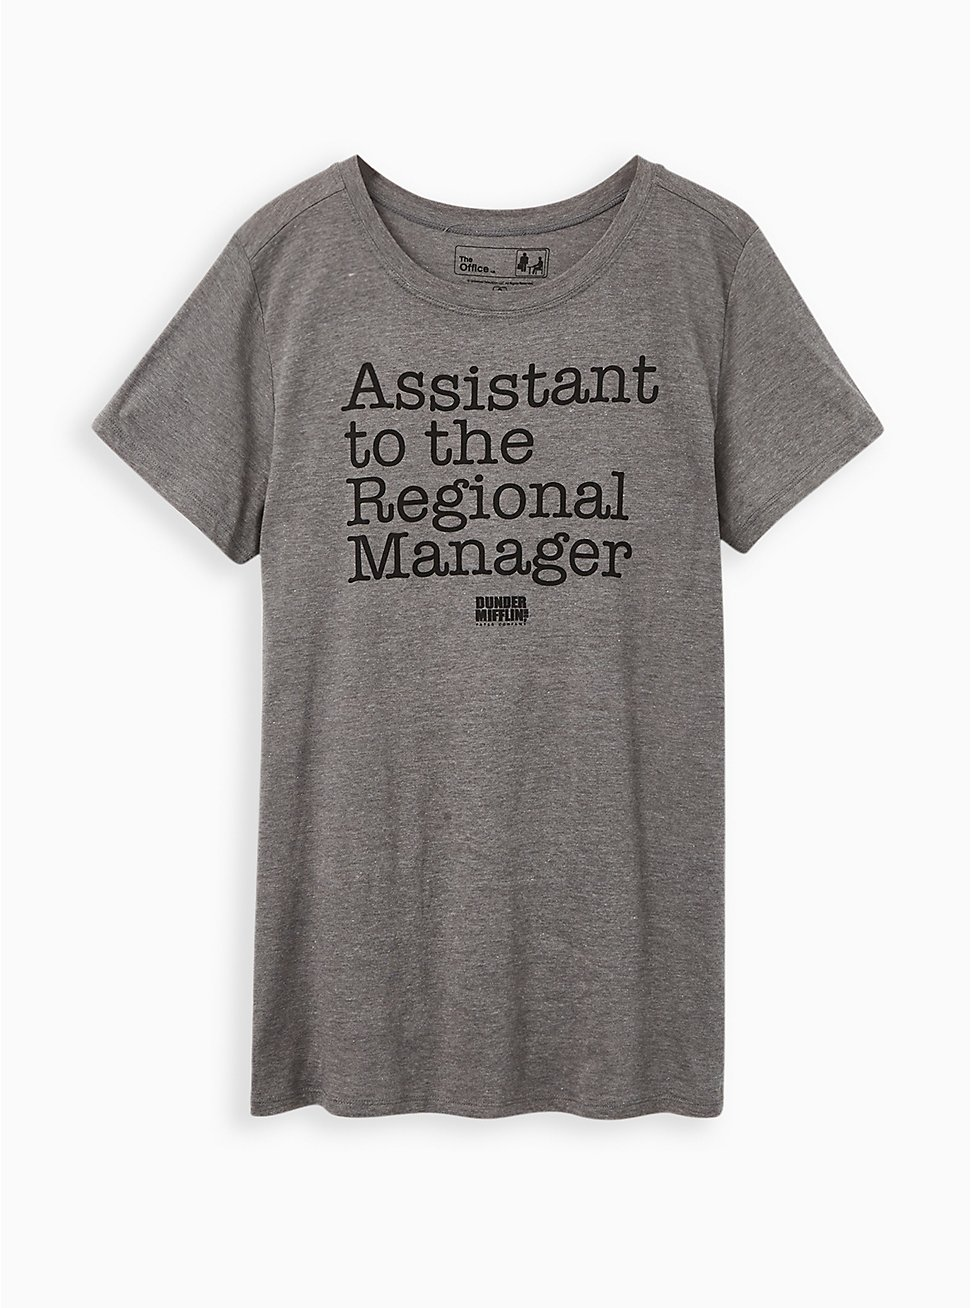 Classic Fit Crew Tee – The Office Assistant To Regional Manager Grey, MEDIUM HEATHER GREY, hi-res